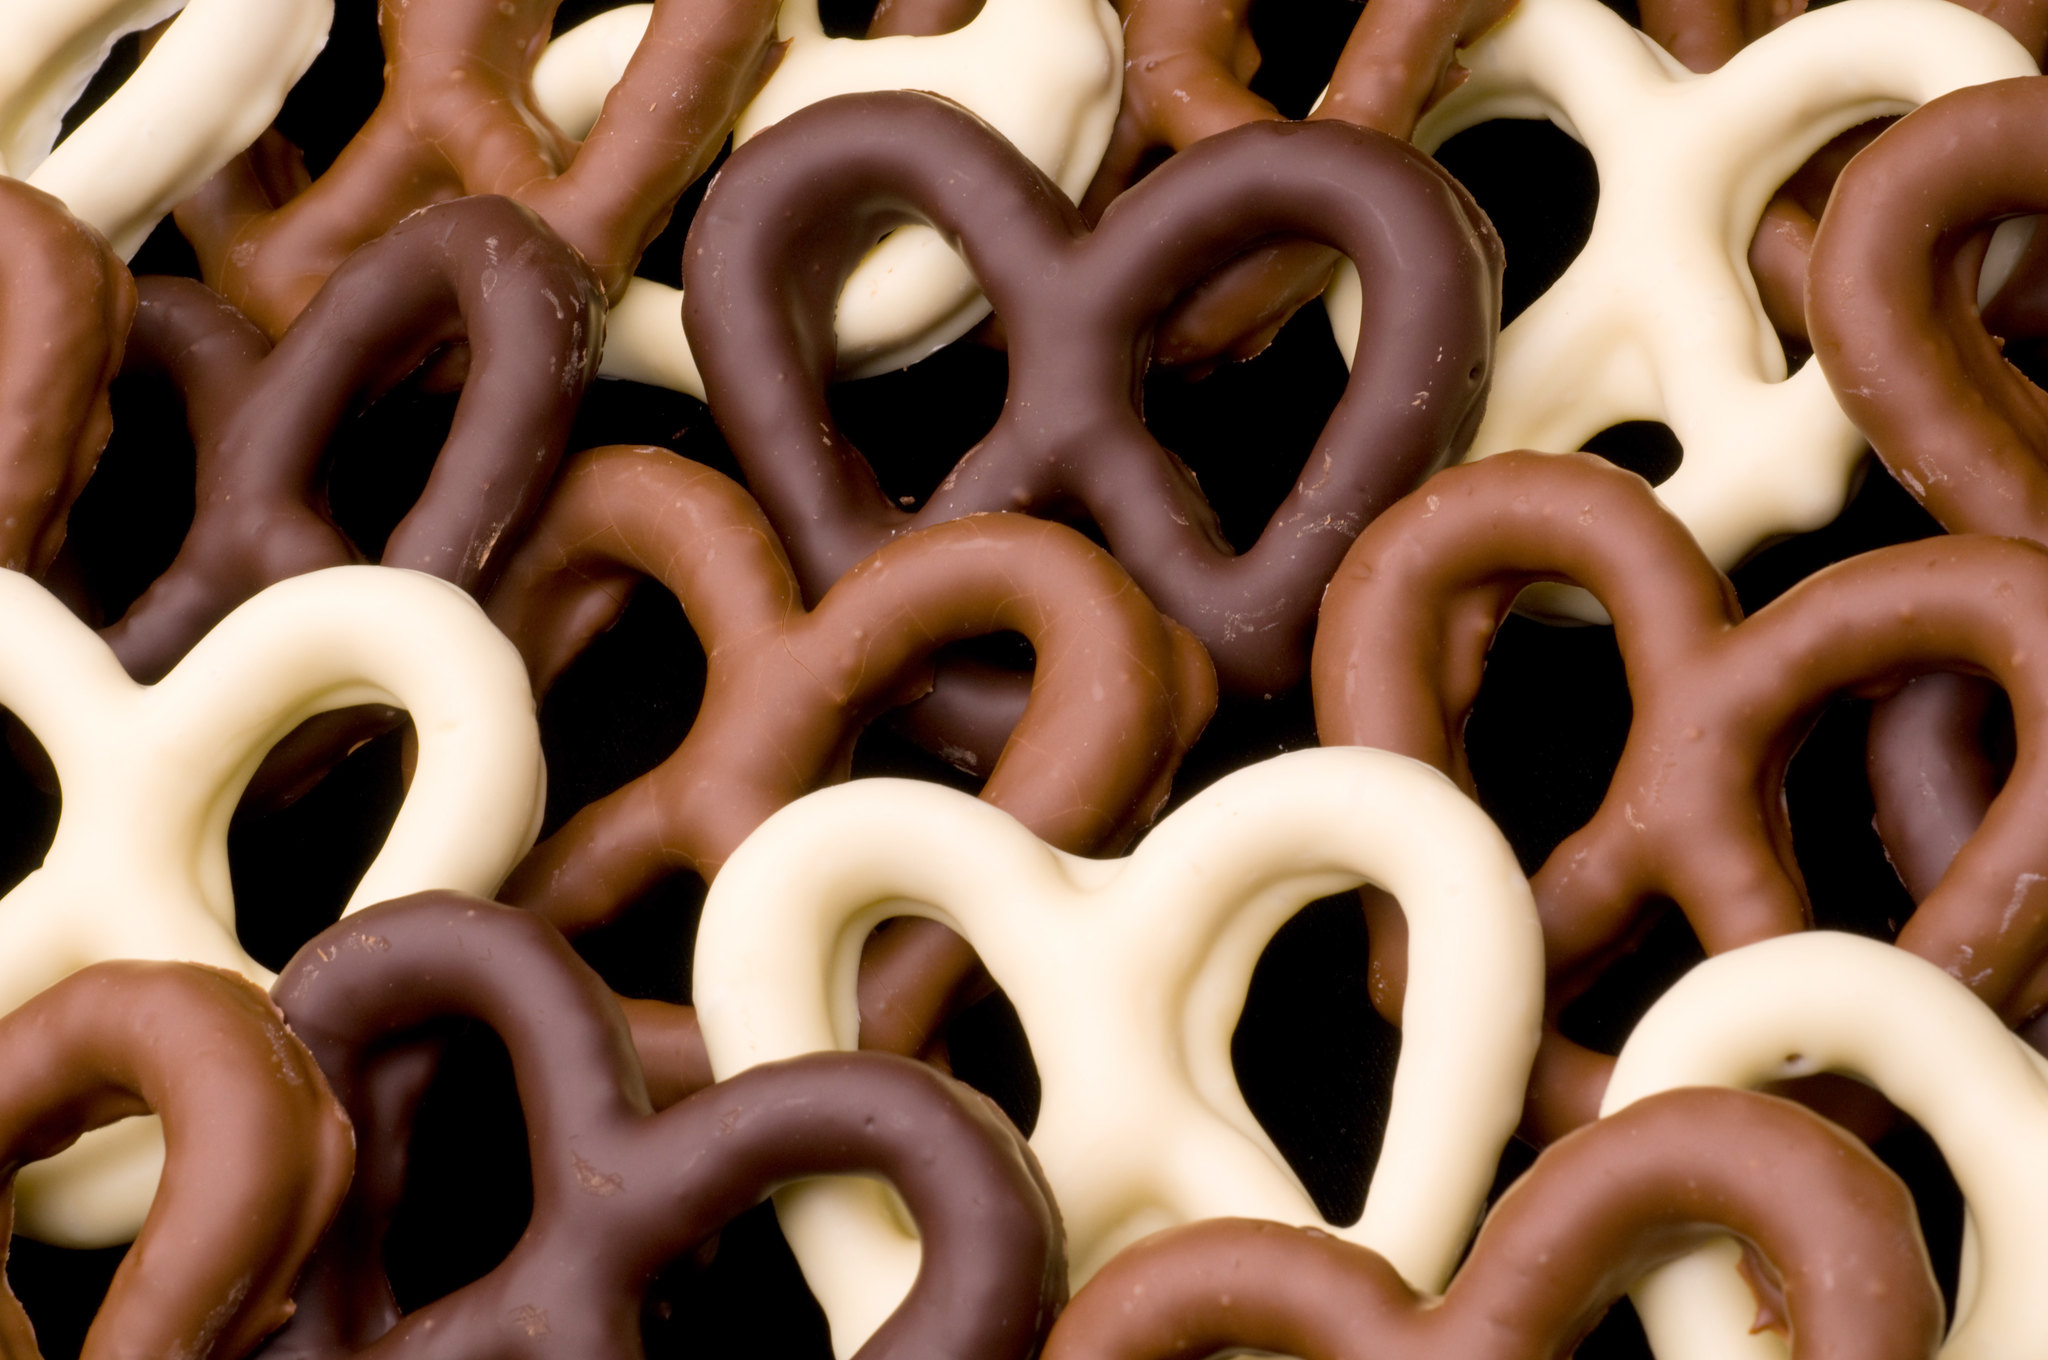 Whetstone Chocolate covered pretzels